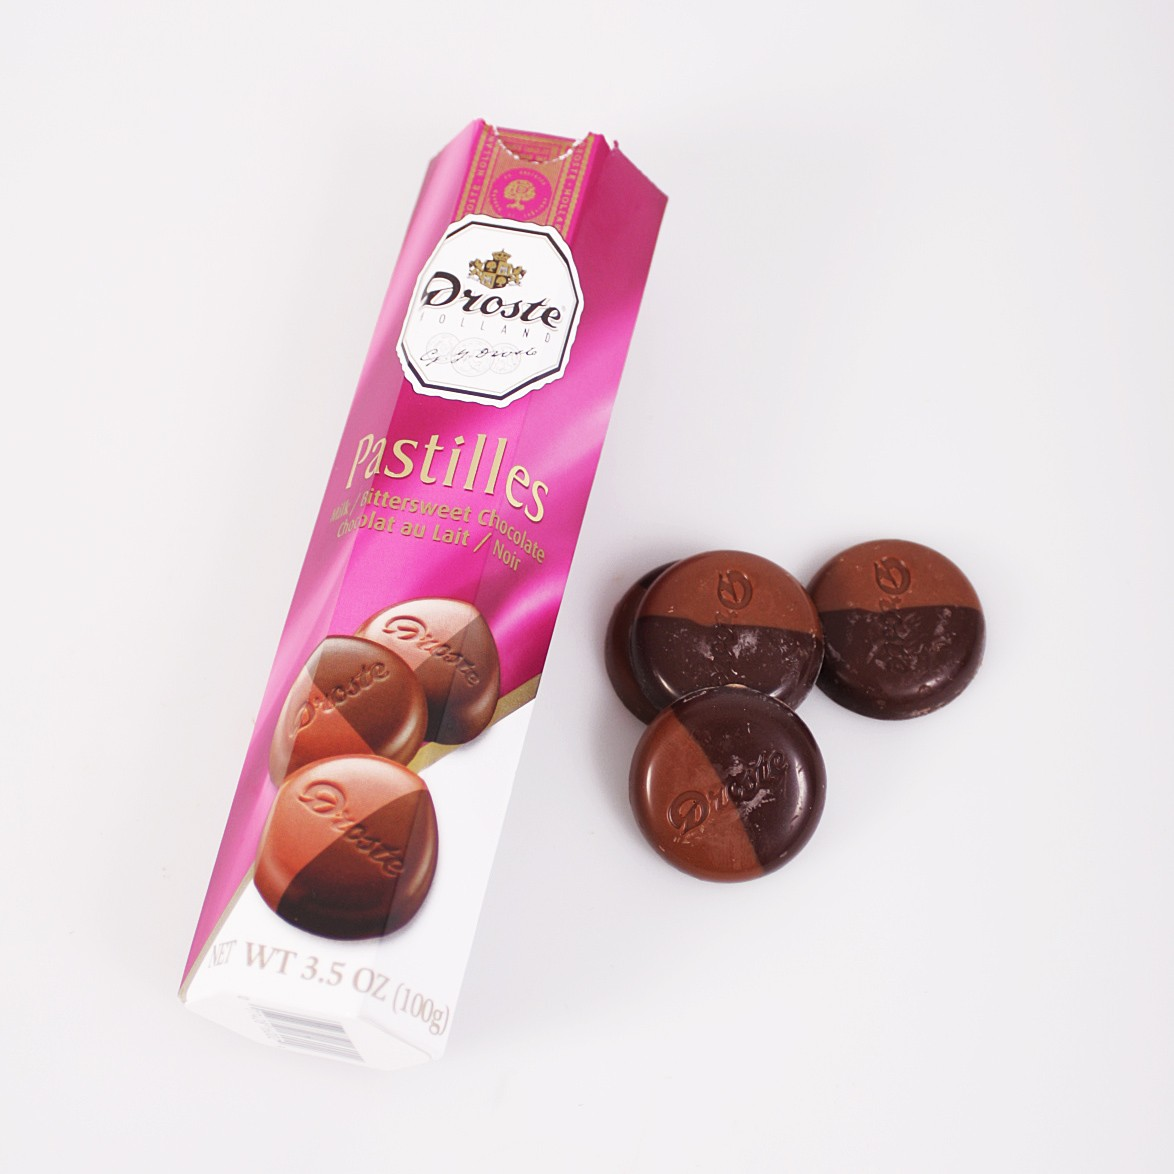 Droste Milk/Dark Chocolate Pastilles